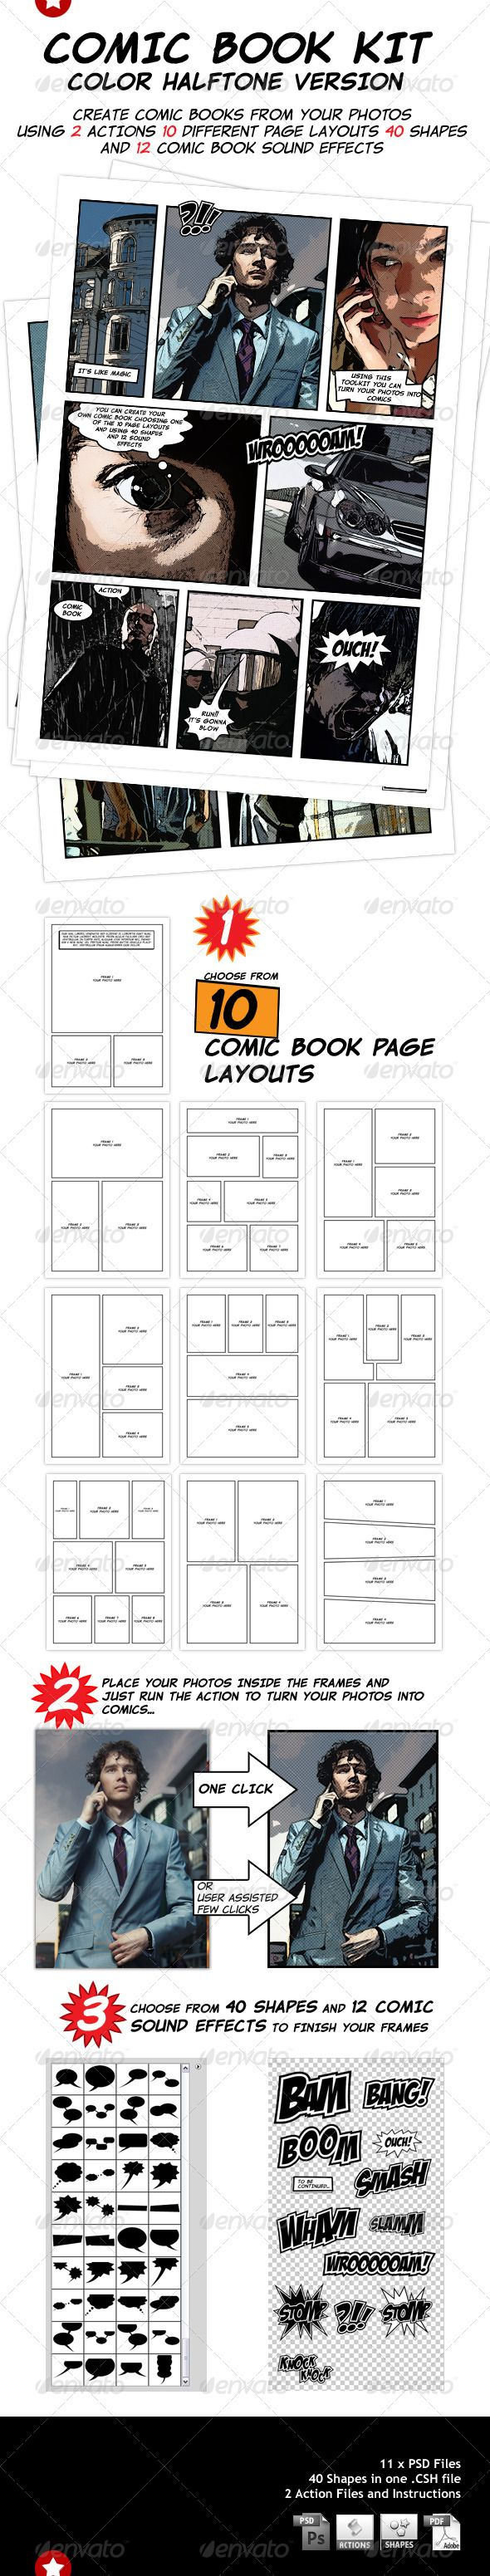 Best 116 monster ladies gym ref images on pinterest other for Comic book page template psd